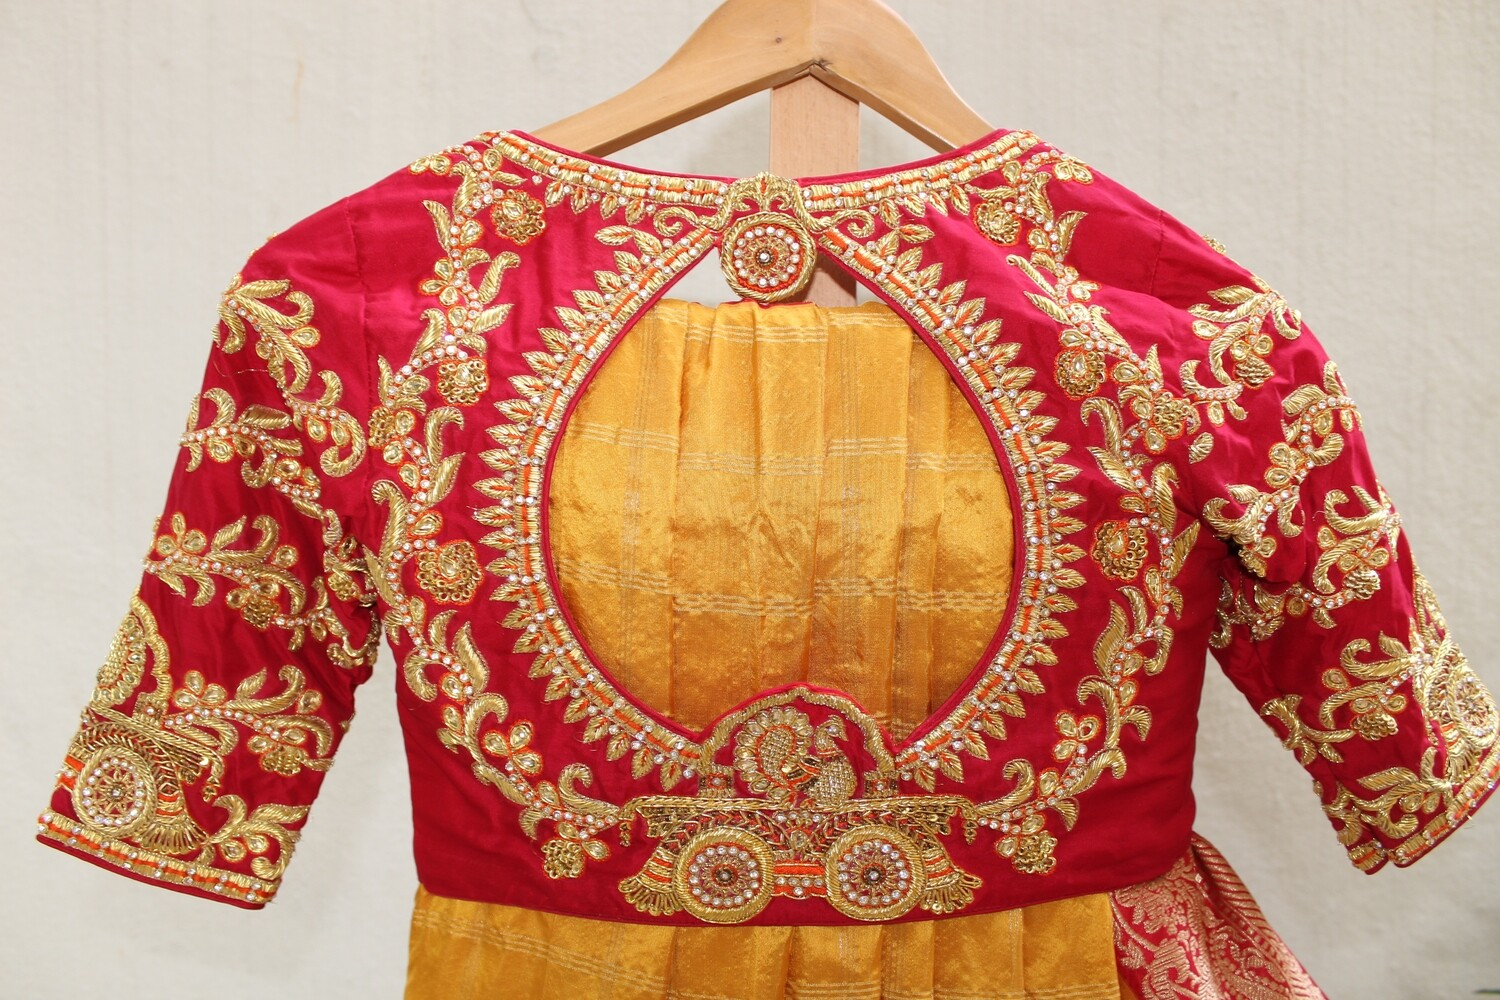 Grand Bridal Chariot design Bridal Blouse